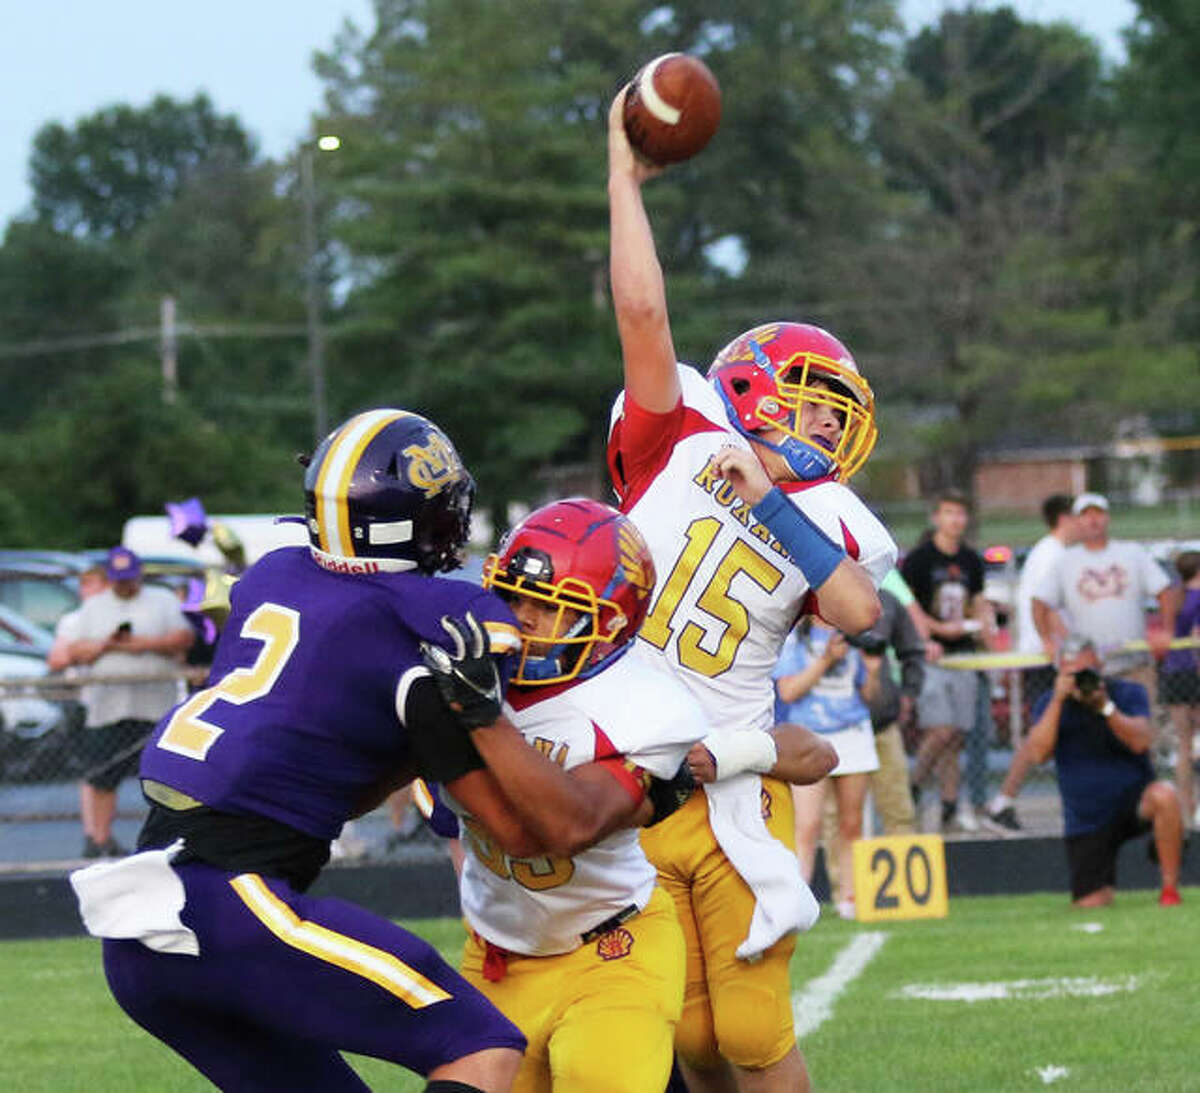 Roxana quarterback Chris Walleck (15) gets off a pass while being hit by CM's Braden Arview while Shells RB Terrel Graves blocks the Eagles' Logan Turbyfill (2) on Friday night at Hauser Field in Bethalto.